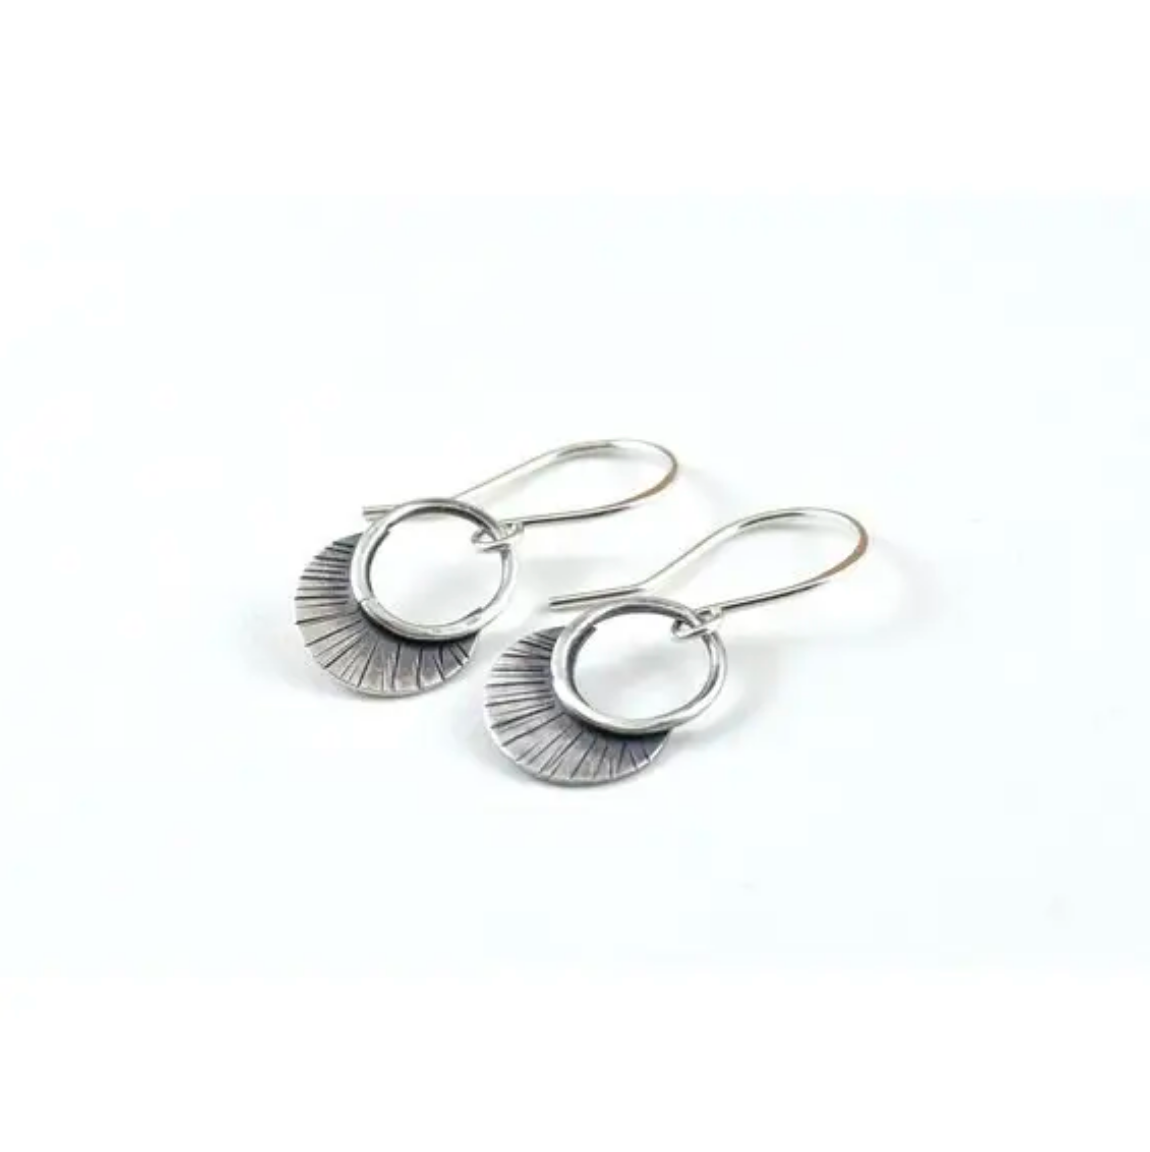 Minimalist Sterling Earrings